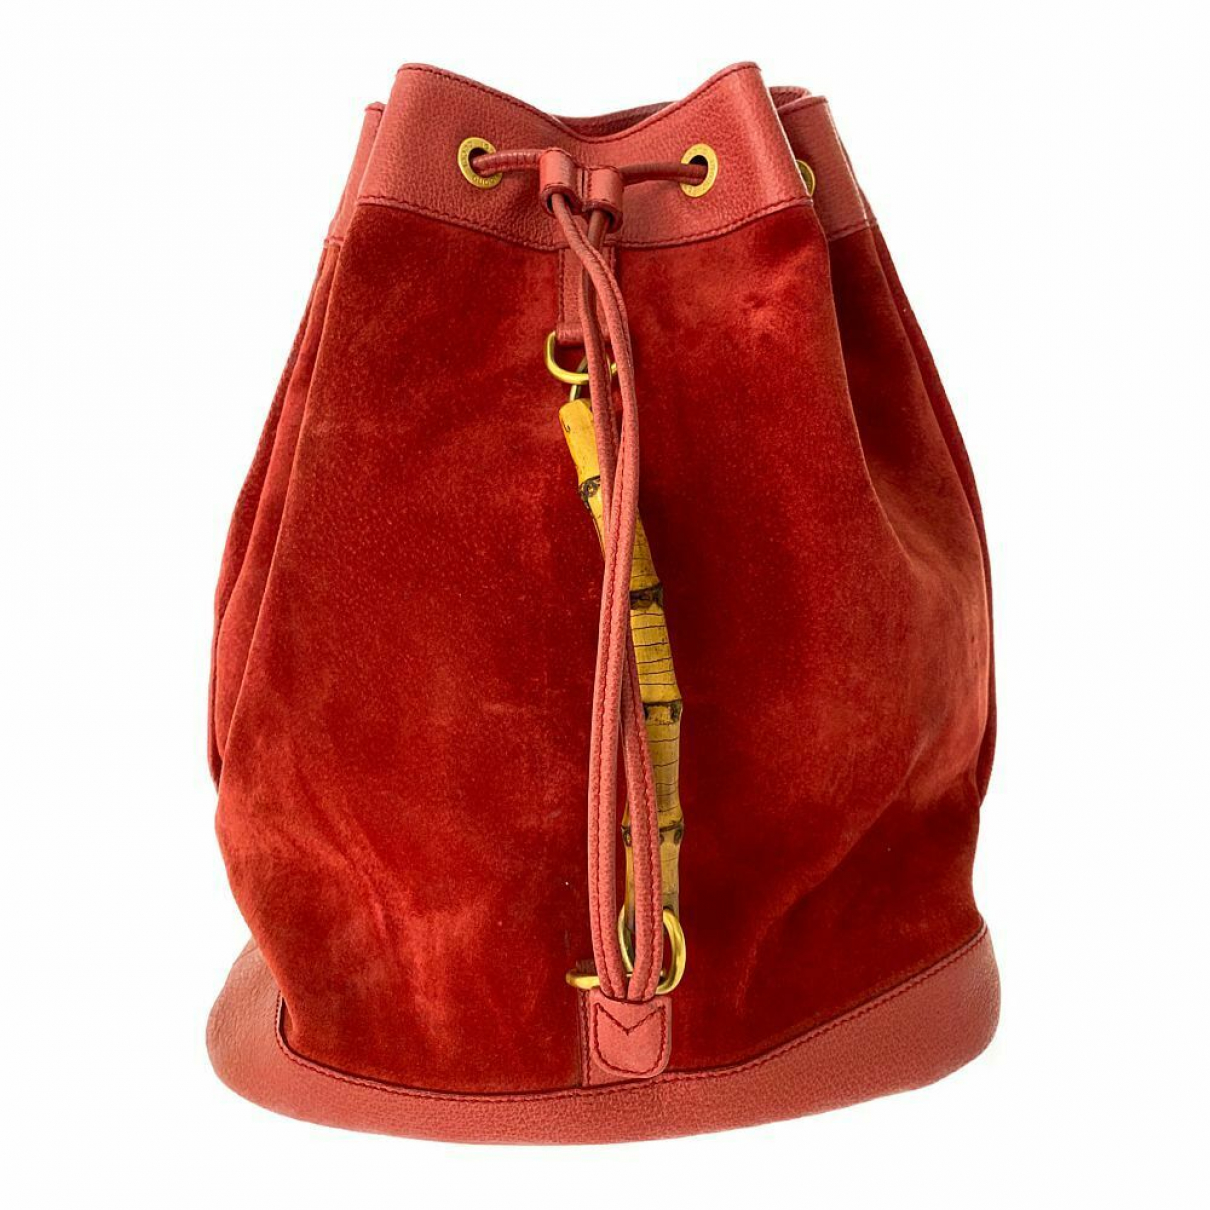 Gucci \N Red Suede backpack for Women \N